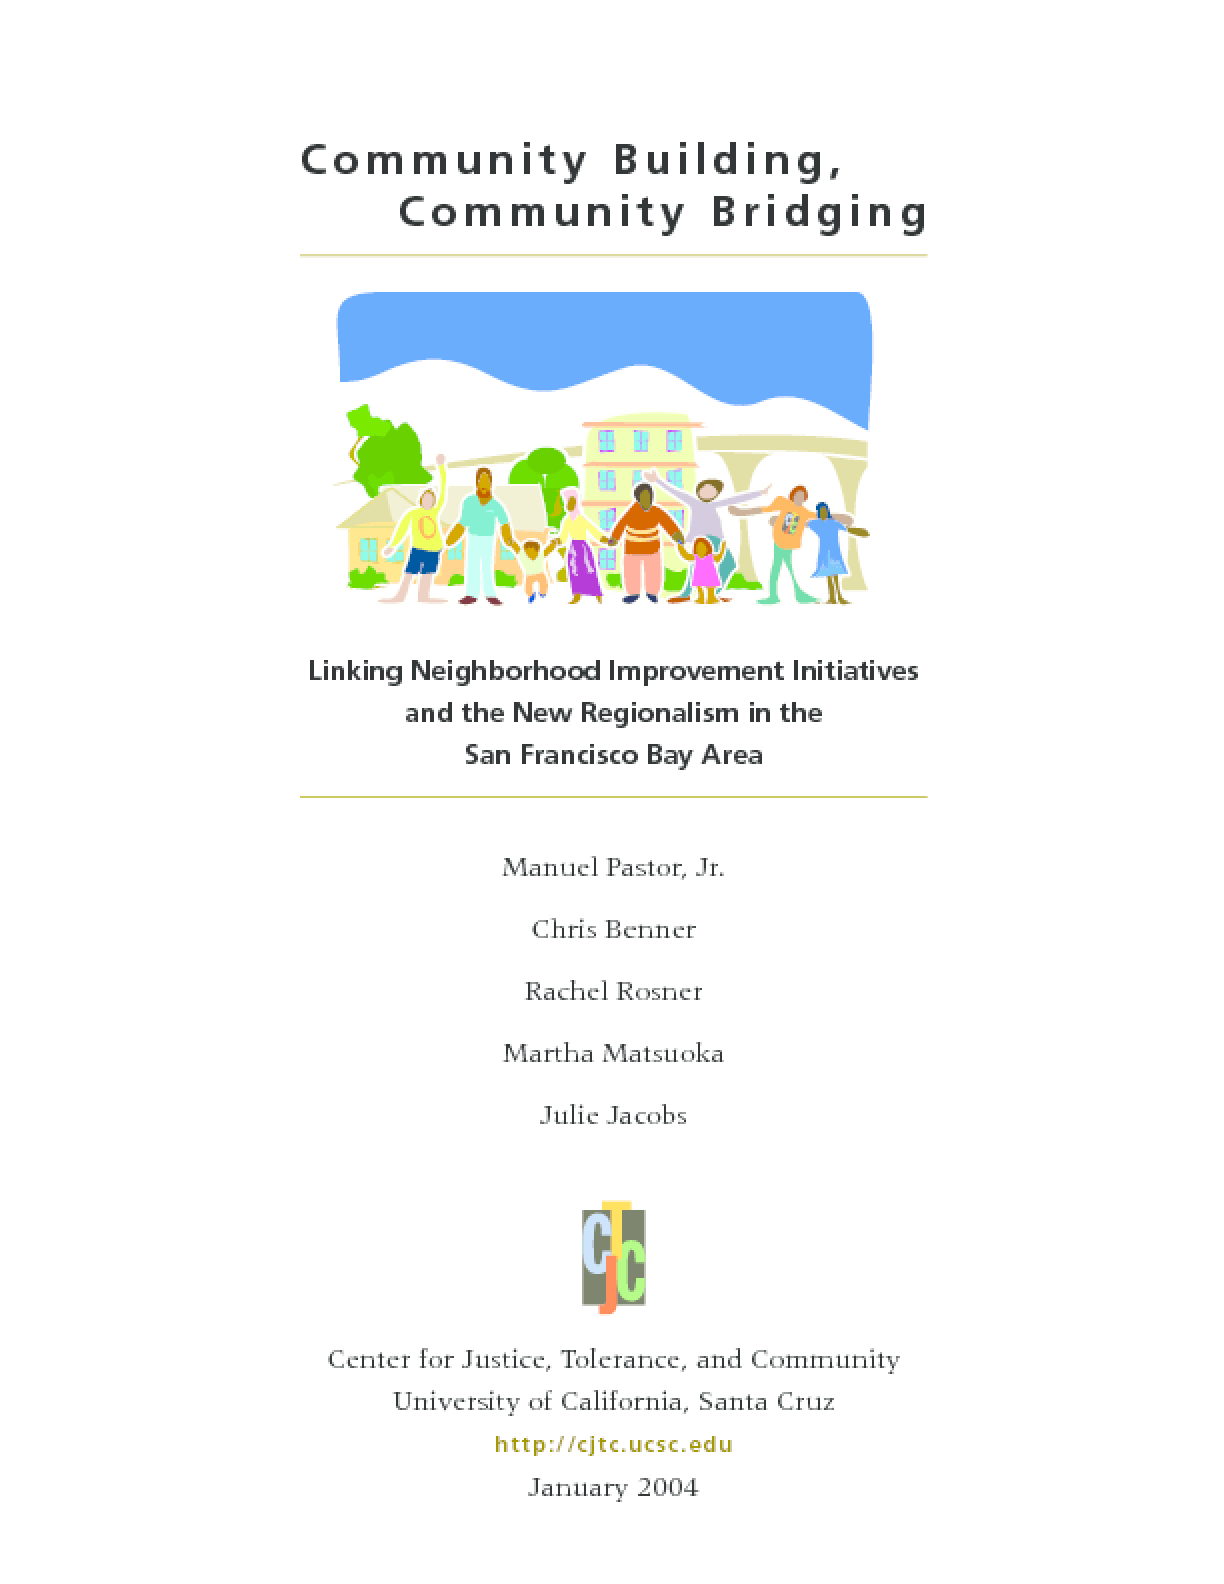 Community Building, Community Bridging